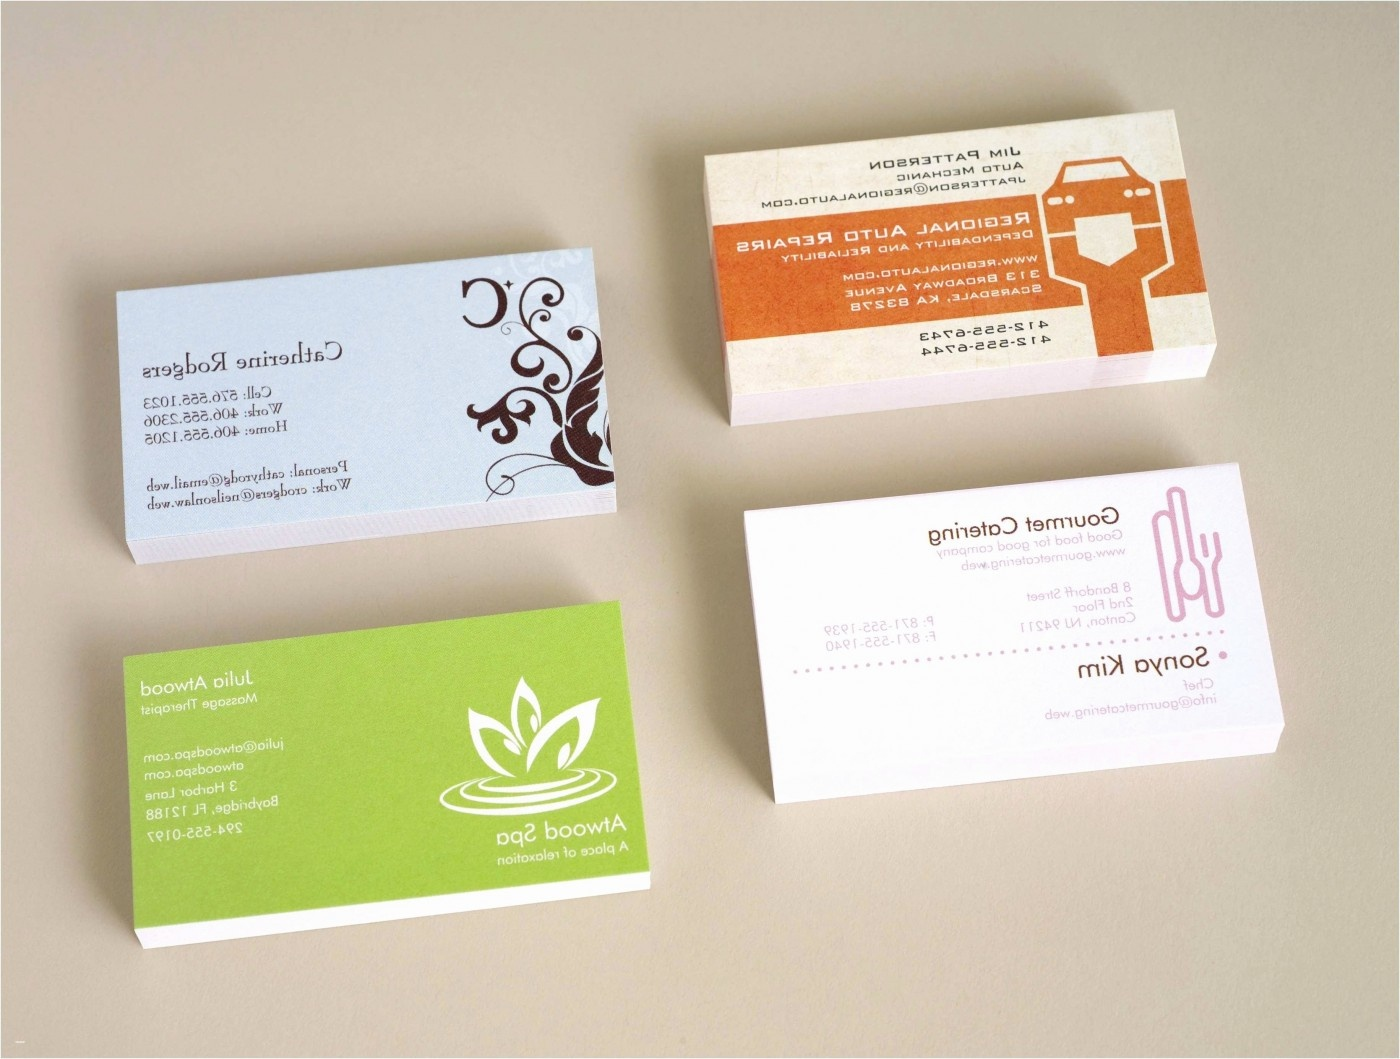 025 Doterra Business Card Template Free Inspirational Ipc Cards Of - Free Printable Doterra Sample Cards